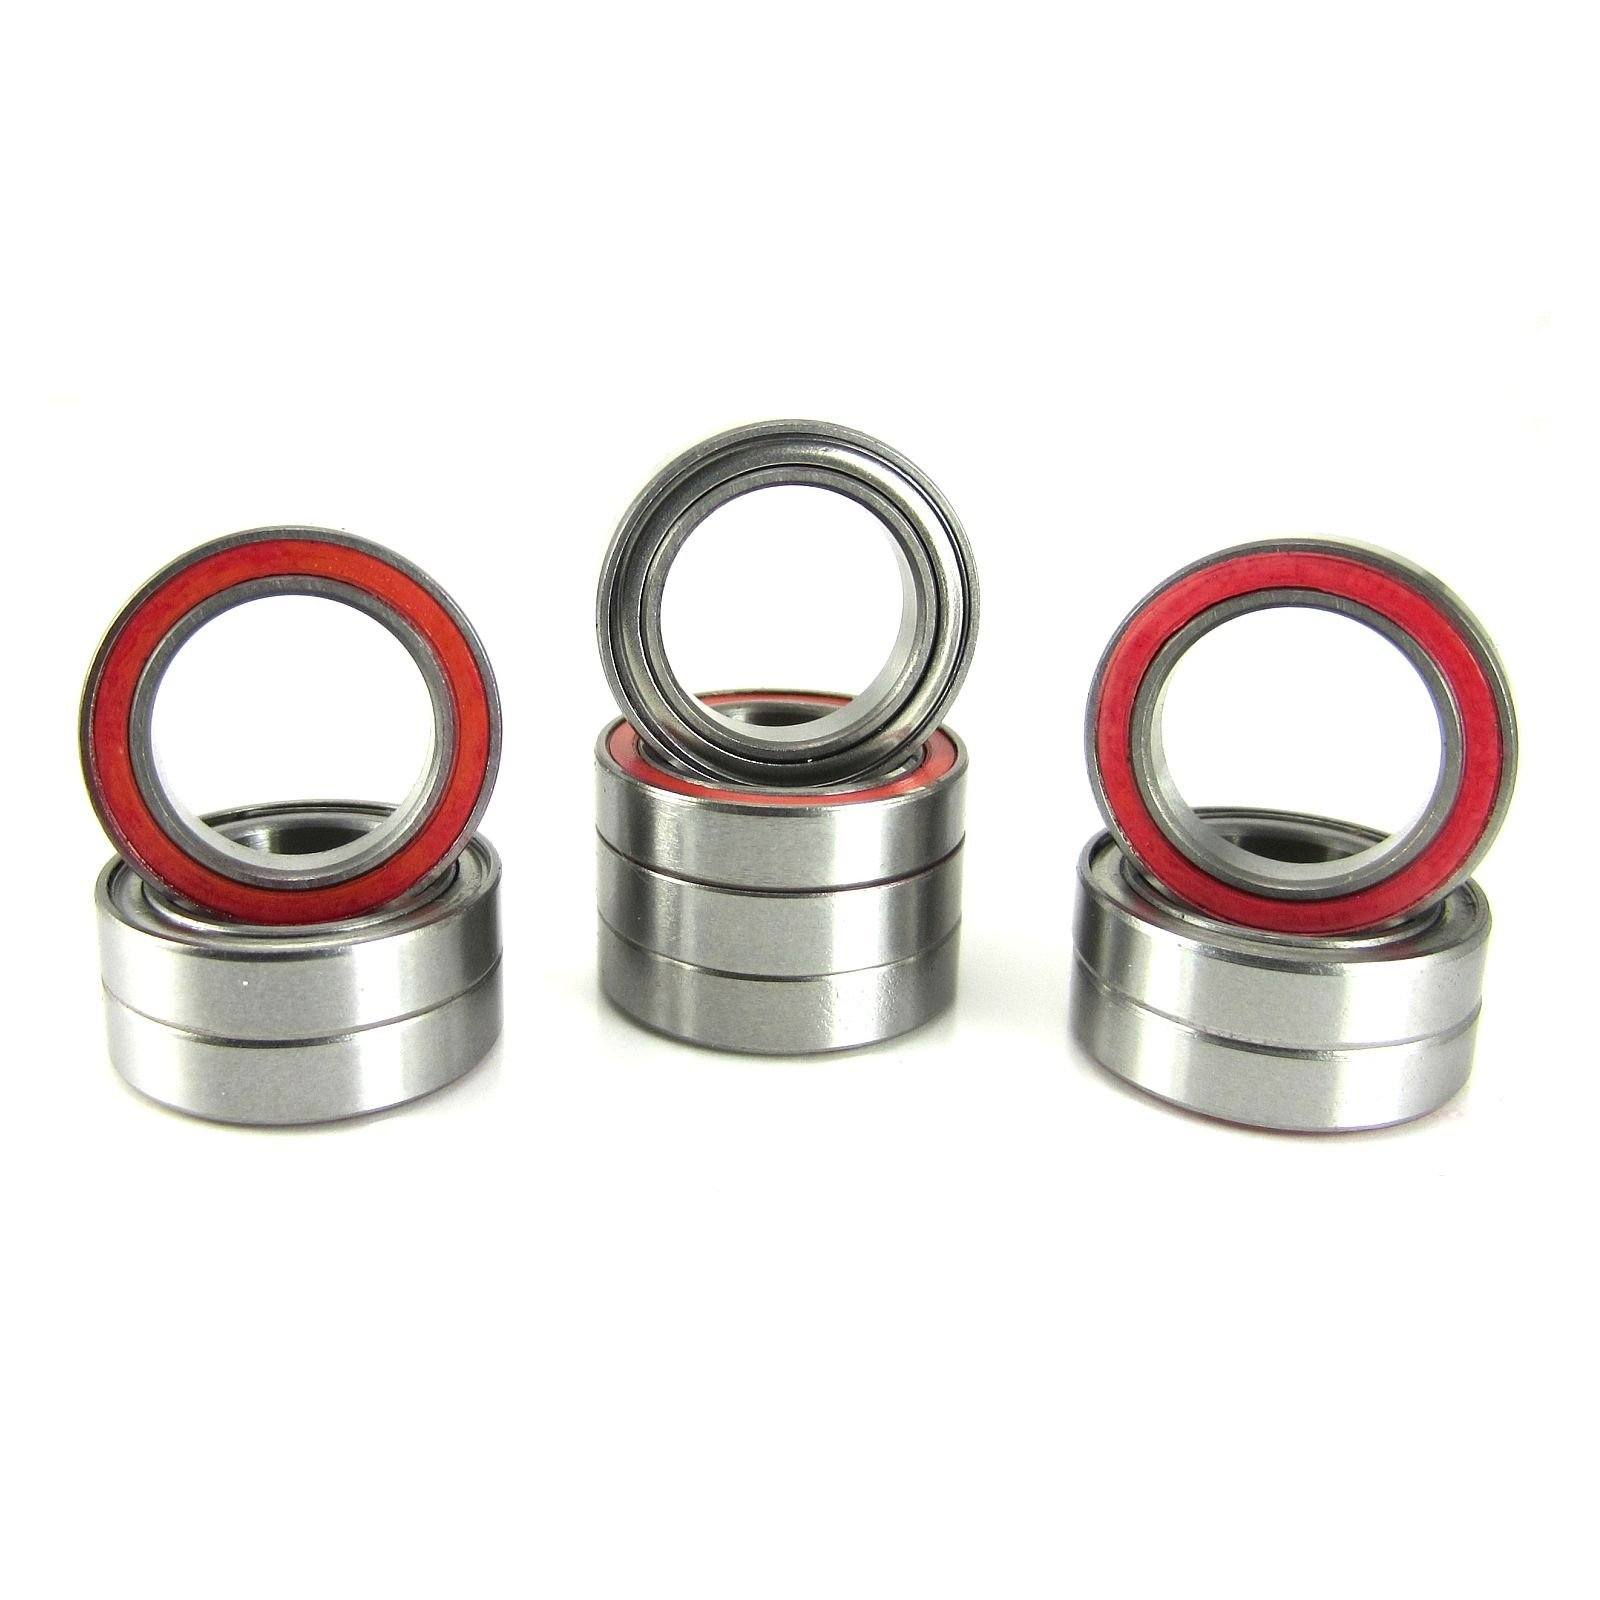 TRB RC 12x18x4mm Precision Ball Bearings ABEC 3 Hybrid Seals RED (10) - trb-rc-bearings